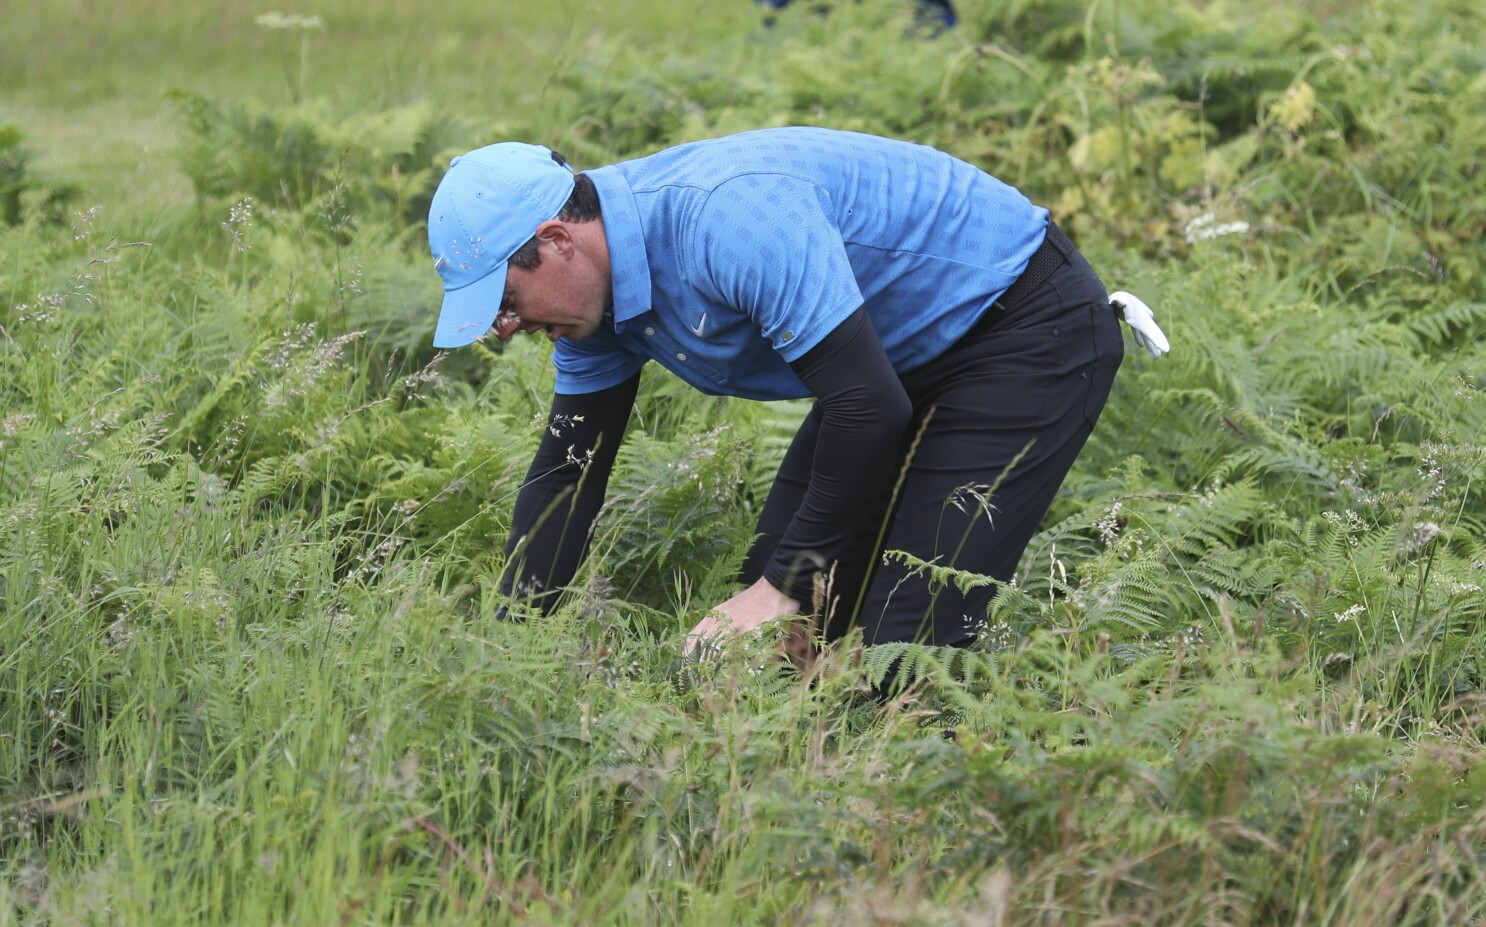 British Open: Rory McIlroy had a rough start, and his day didn't get much better